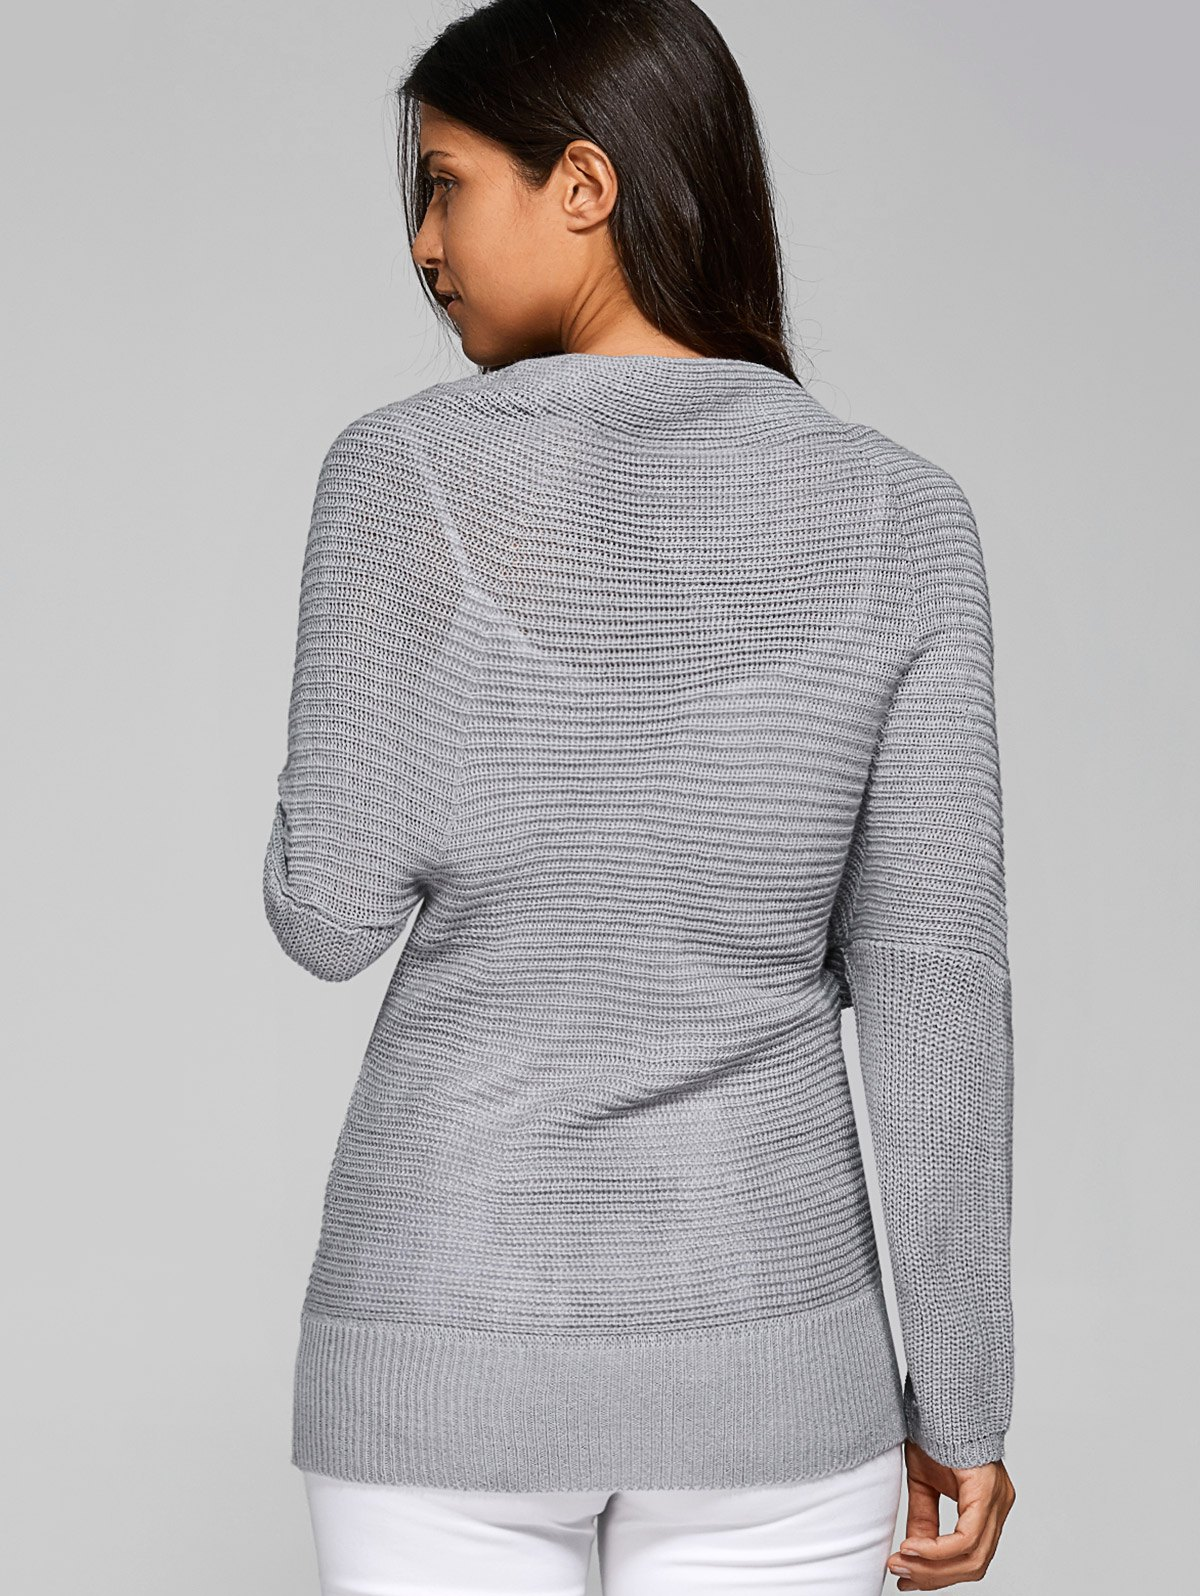 Automne Infini Wrap Sweater - Gris Clair ONE SIZE